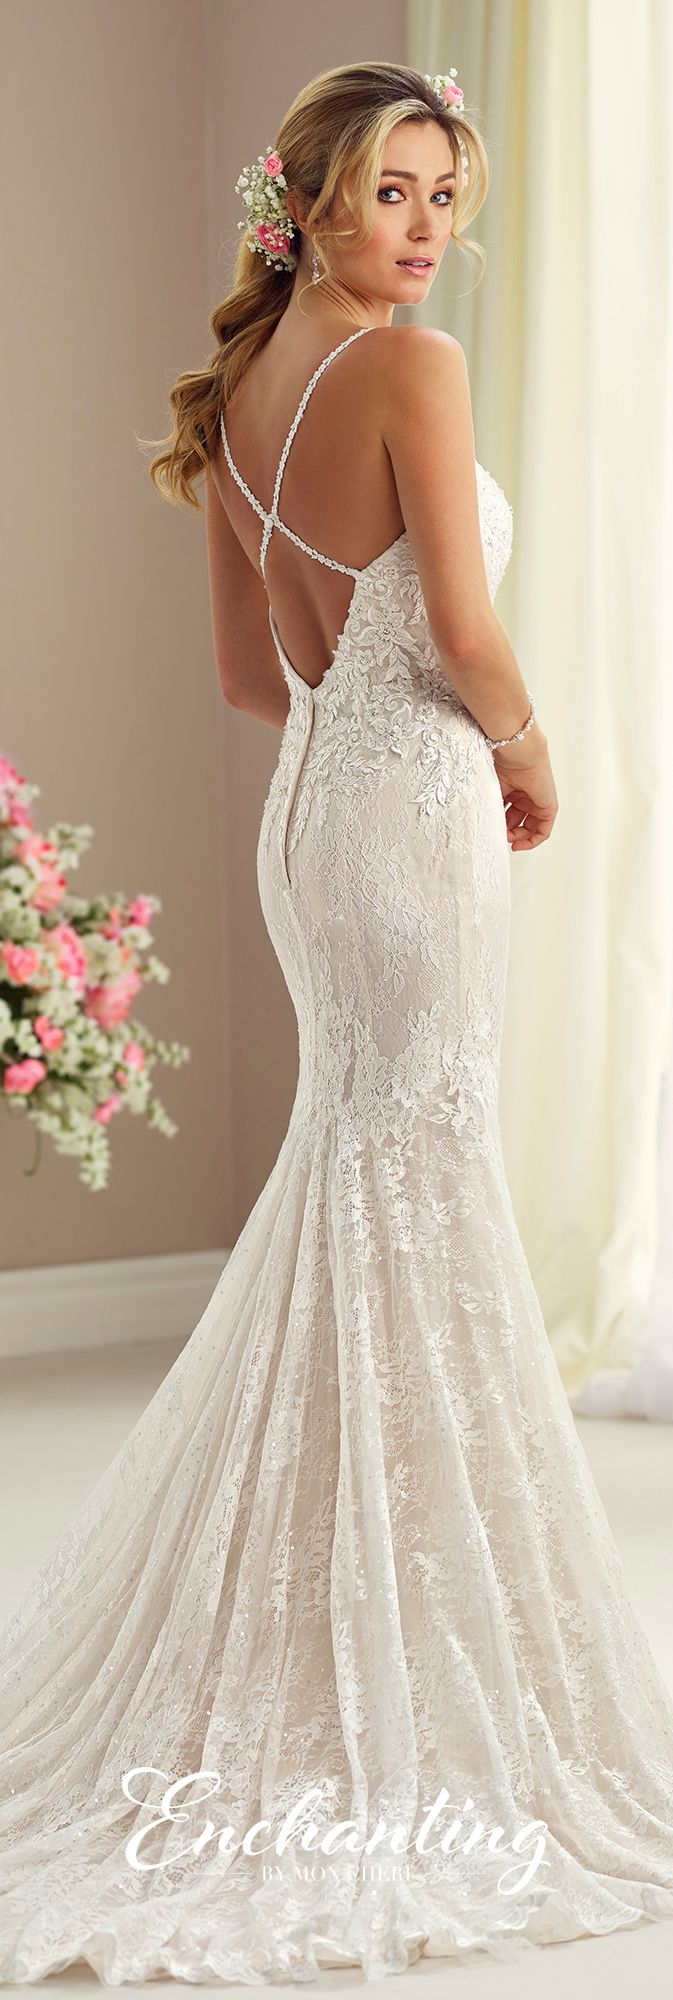 Enchanting by Mon Cheri Fall 2017 Collection - Style 217107 - sleeveless lace over chiffon fit and flare wedding dress with open back with crisscross straps